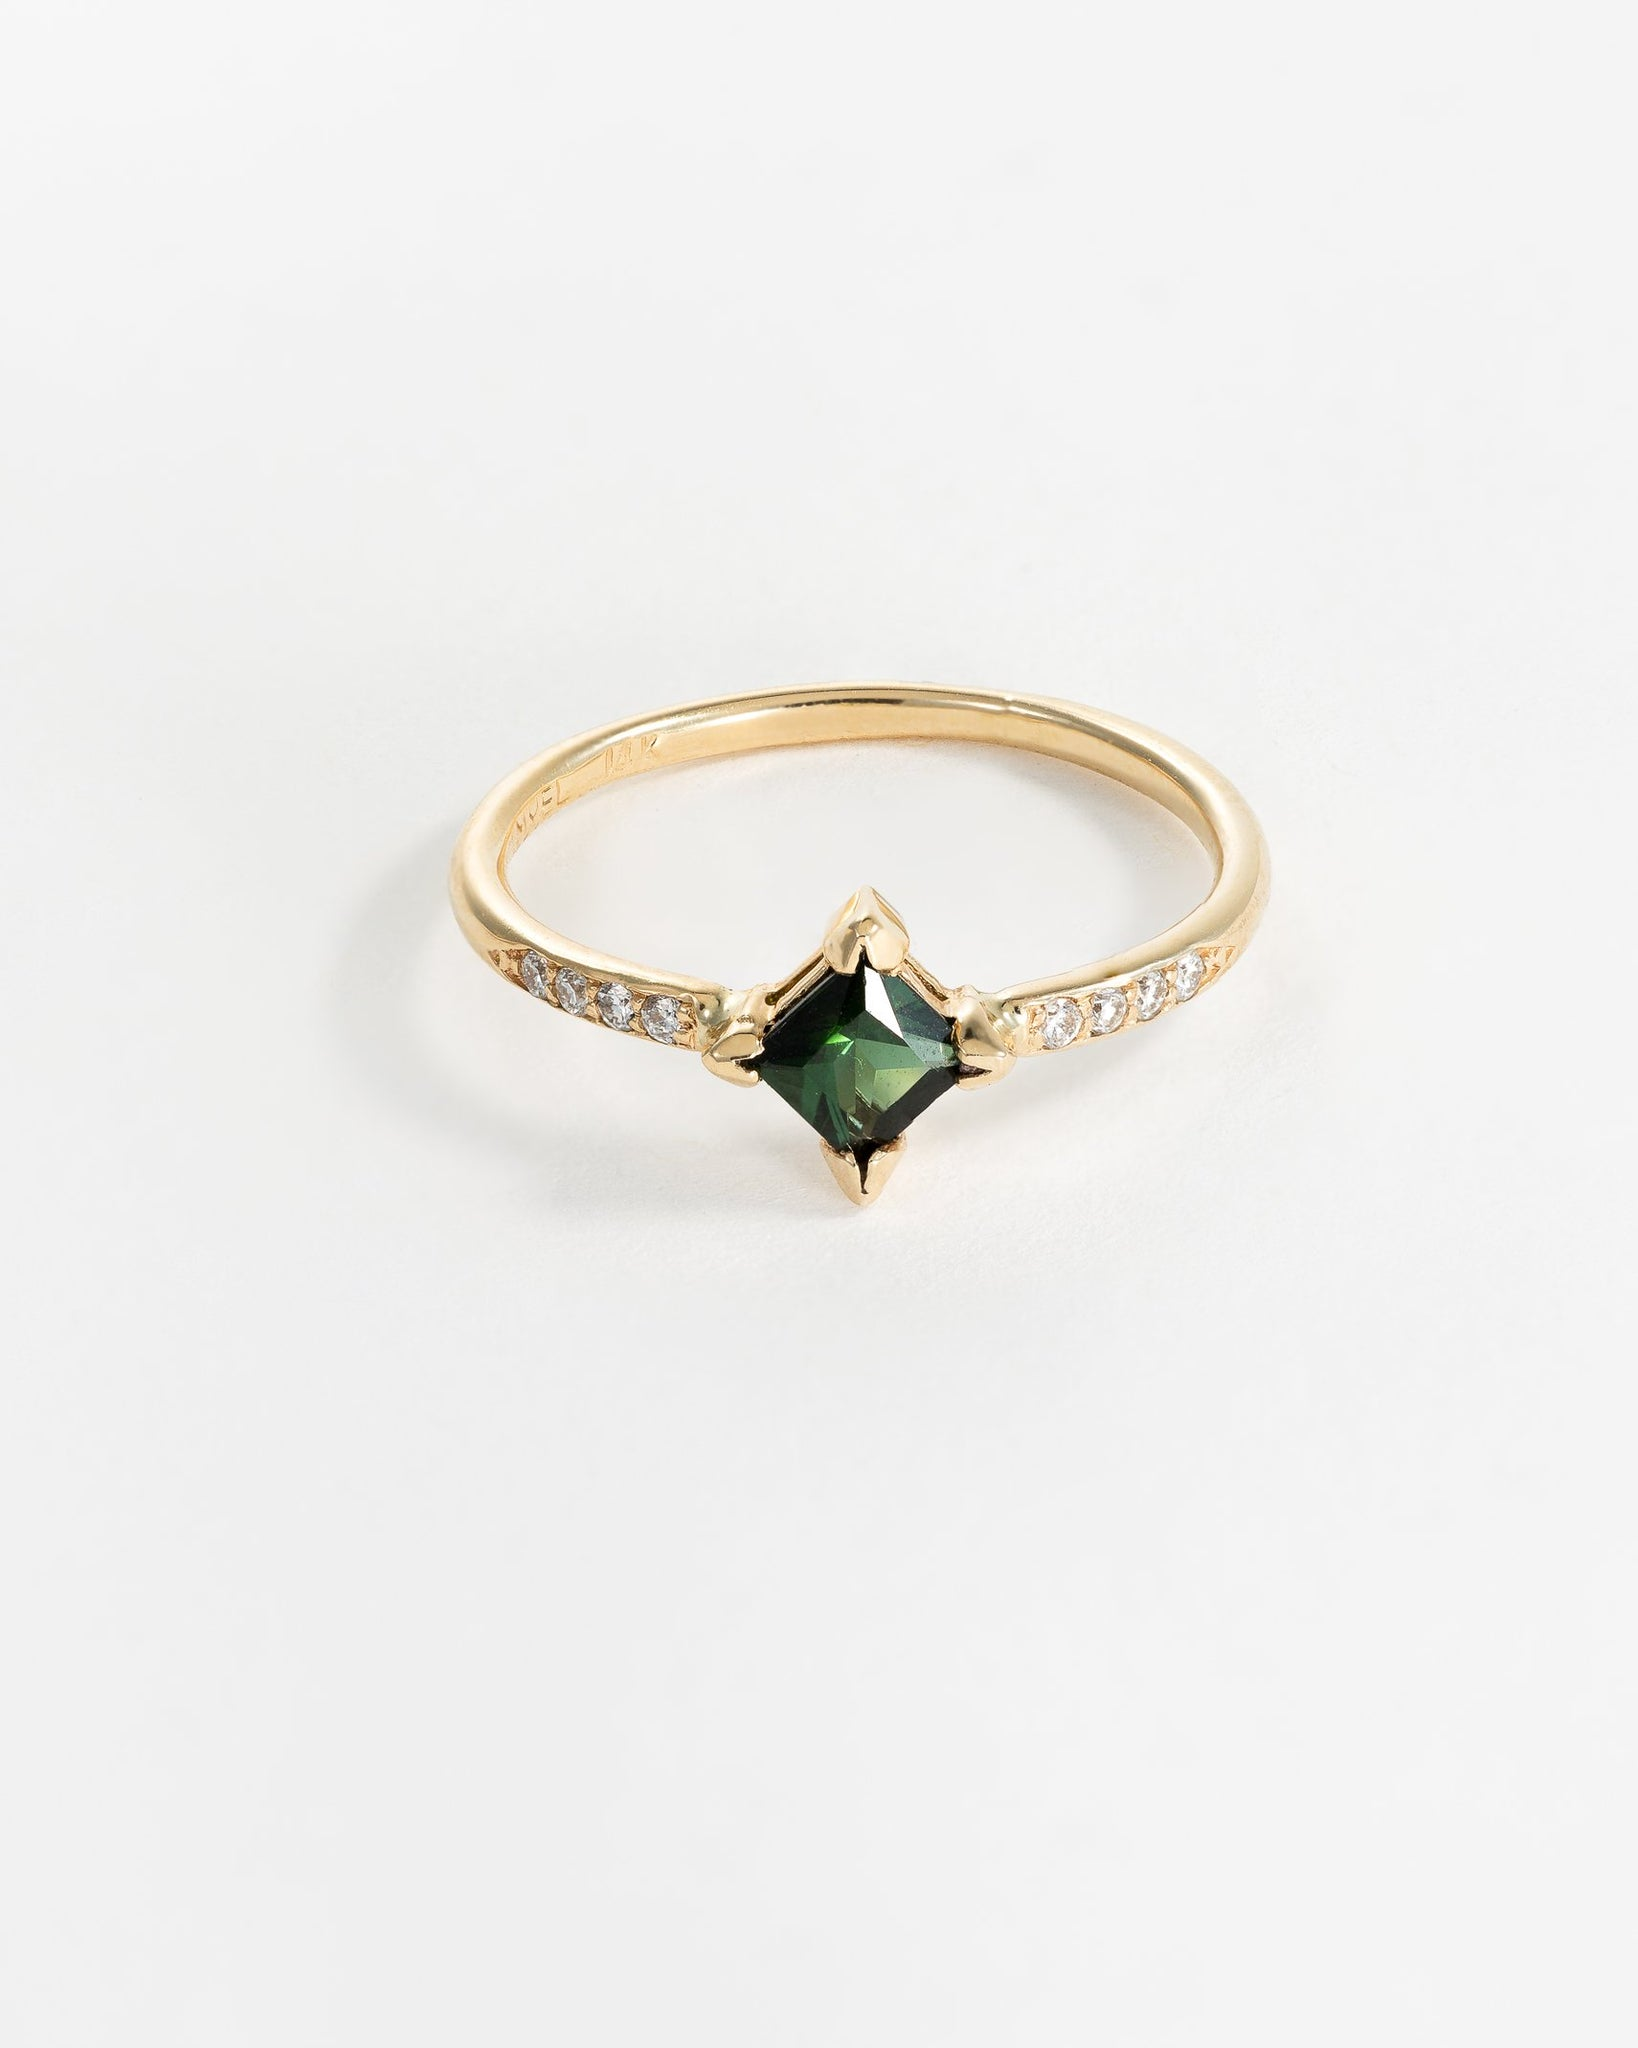 Harmony Ring in Yellow Gold with Green Tourmaline and Diamonds